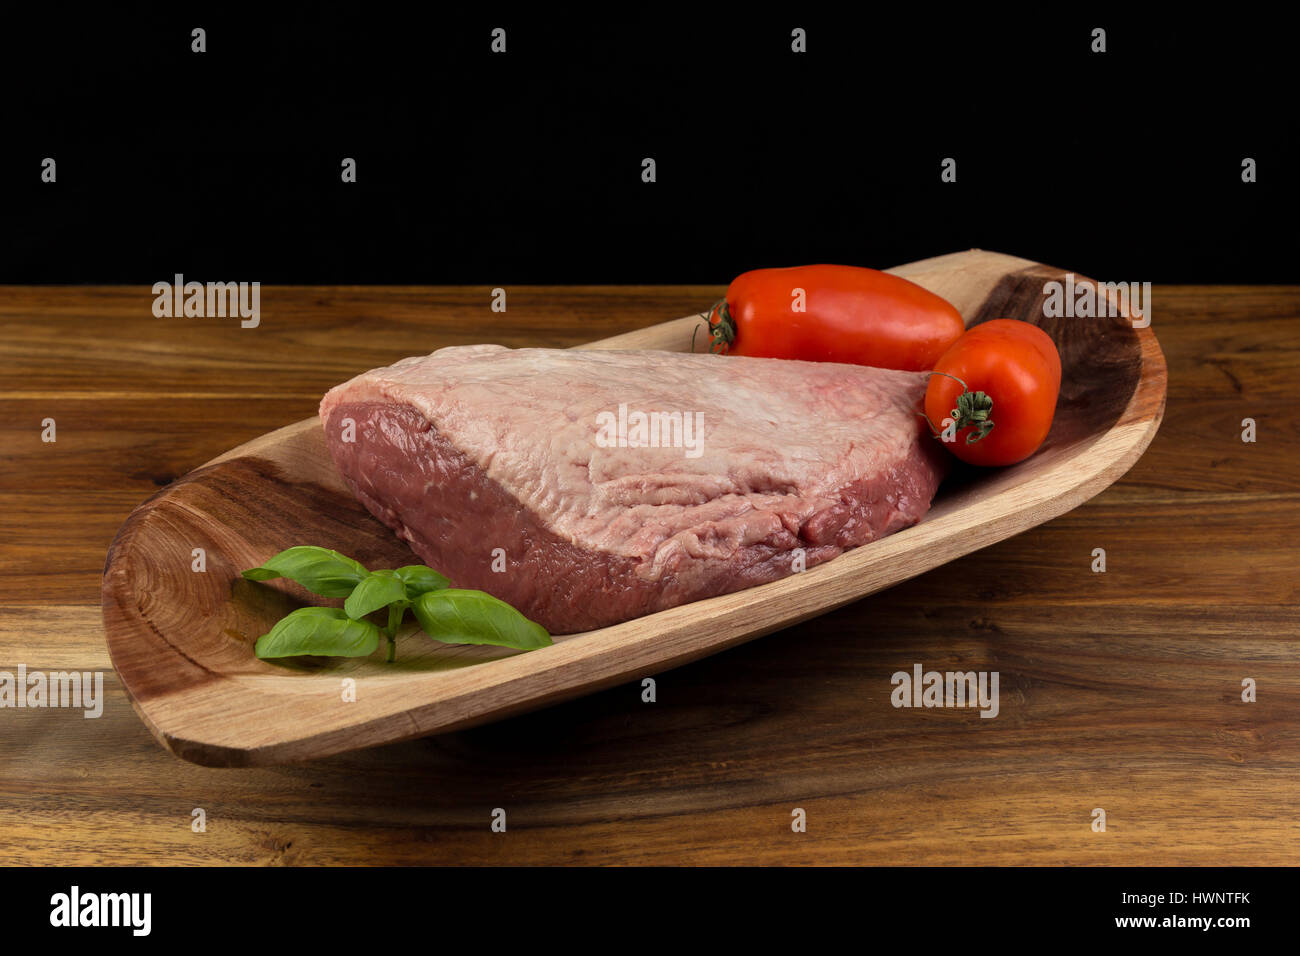 Full piece of raw cow beef (picanha), tomatoes and basil on a wood rectangular bow and natural wood table - black - Stock Image